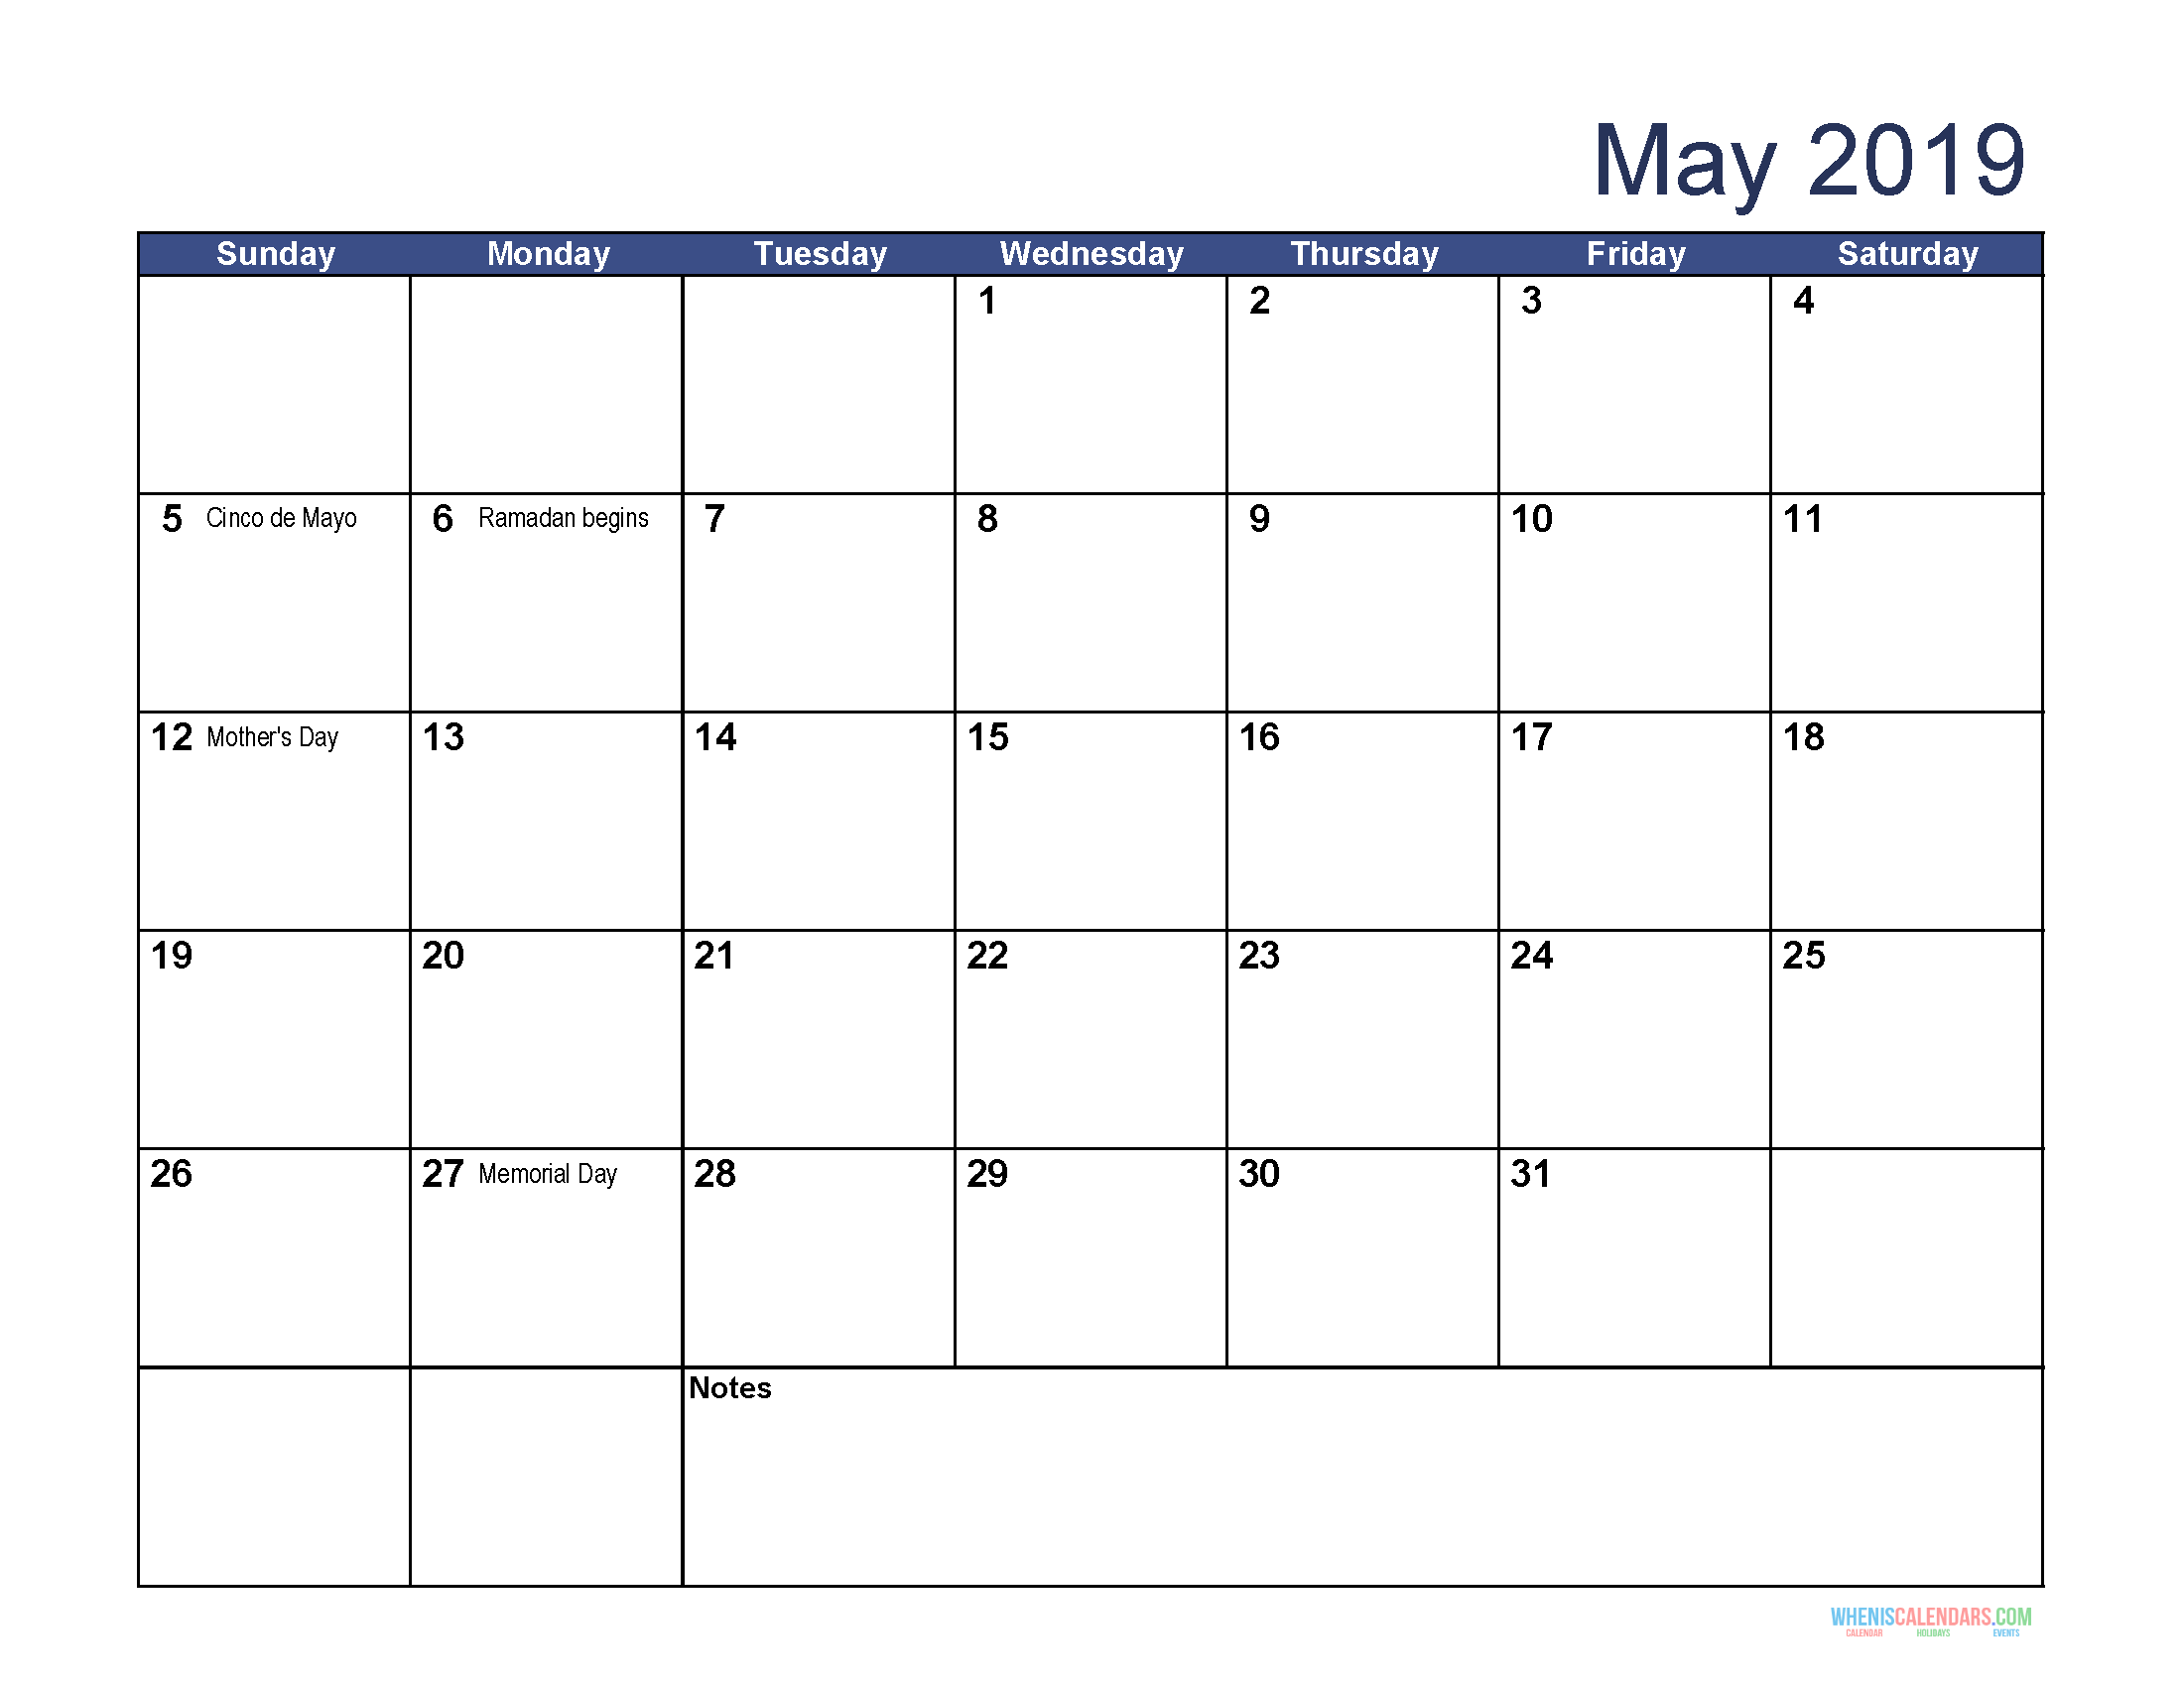 Get May 2019 Calendar with Holidays Printable Template